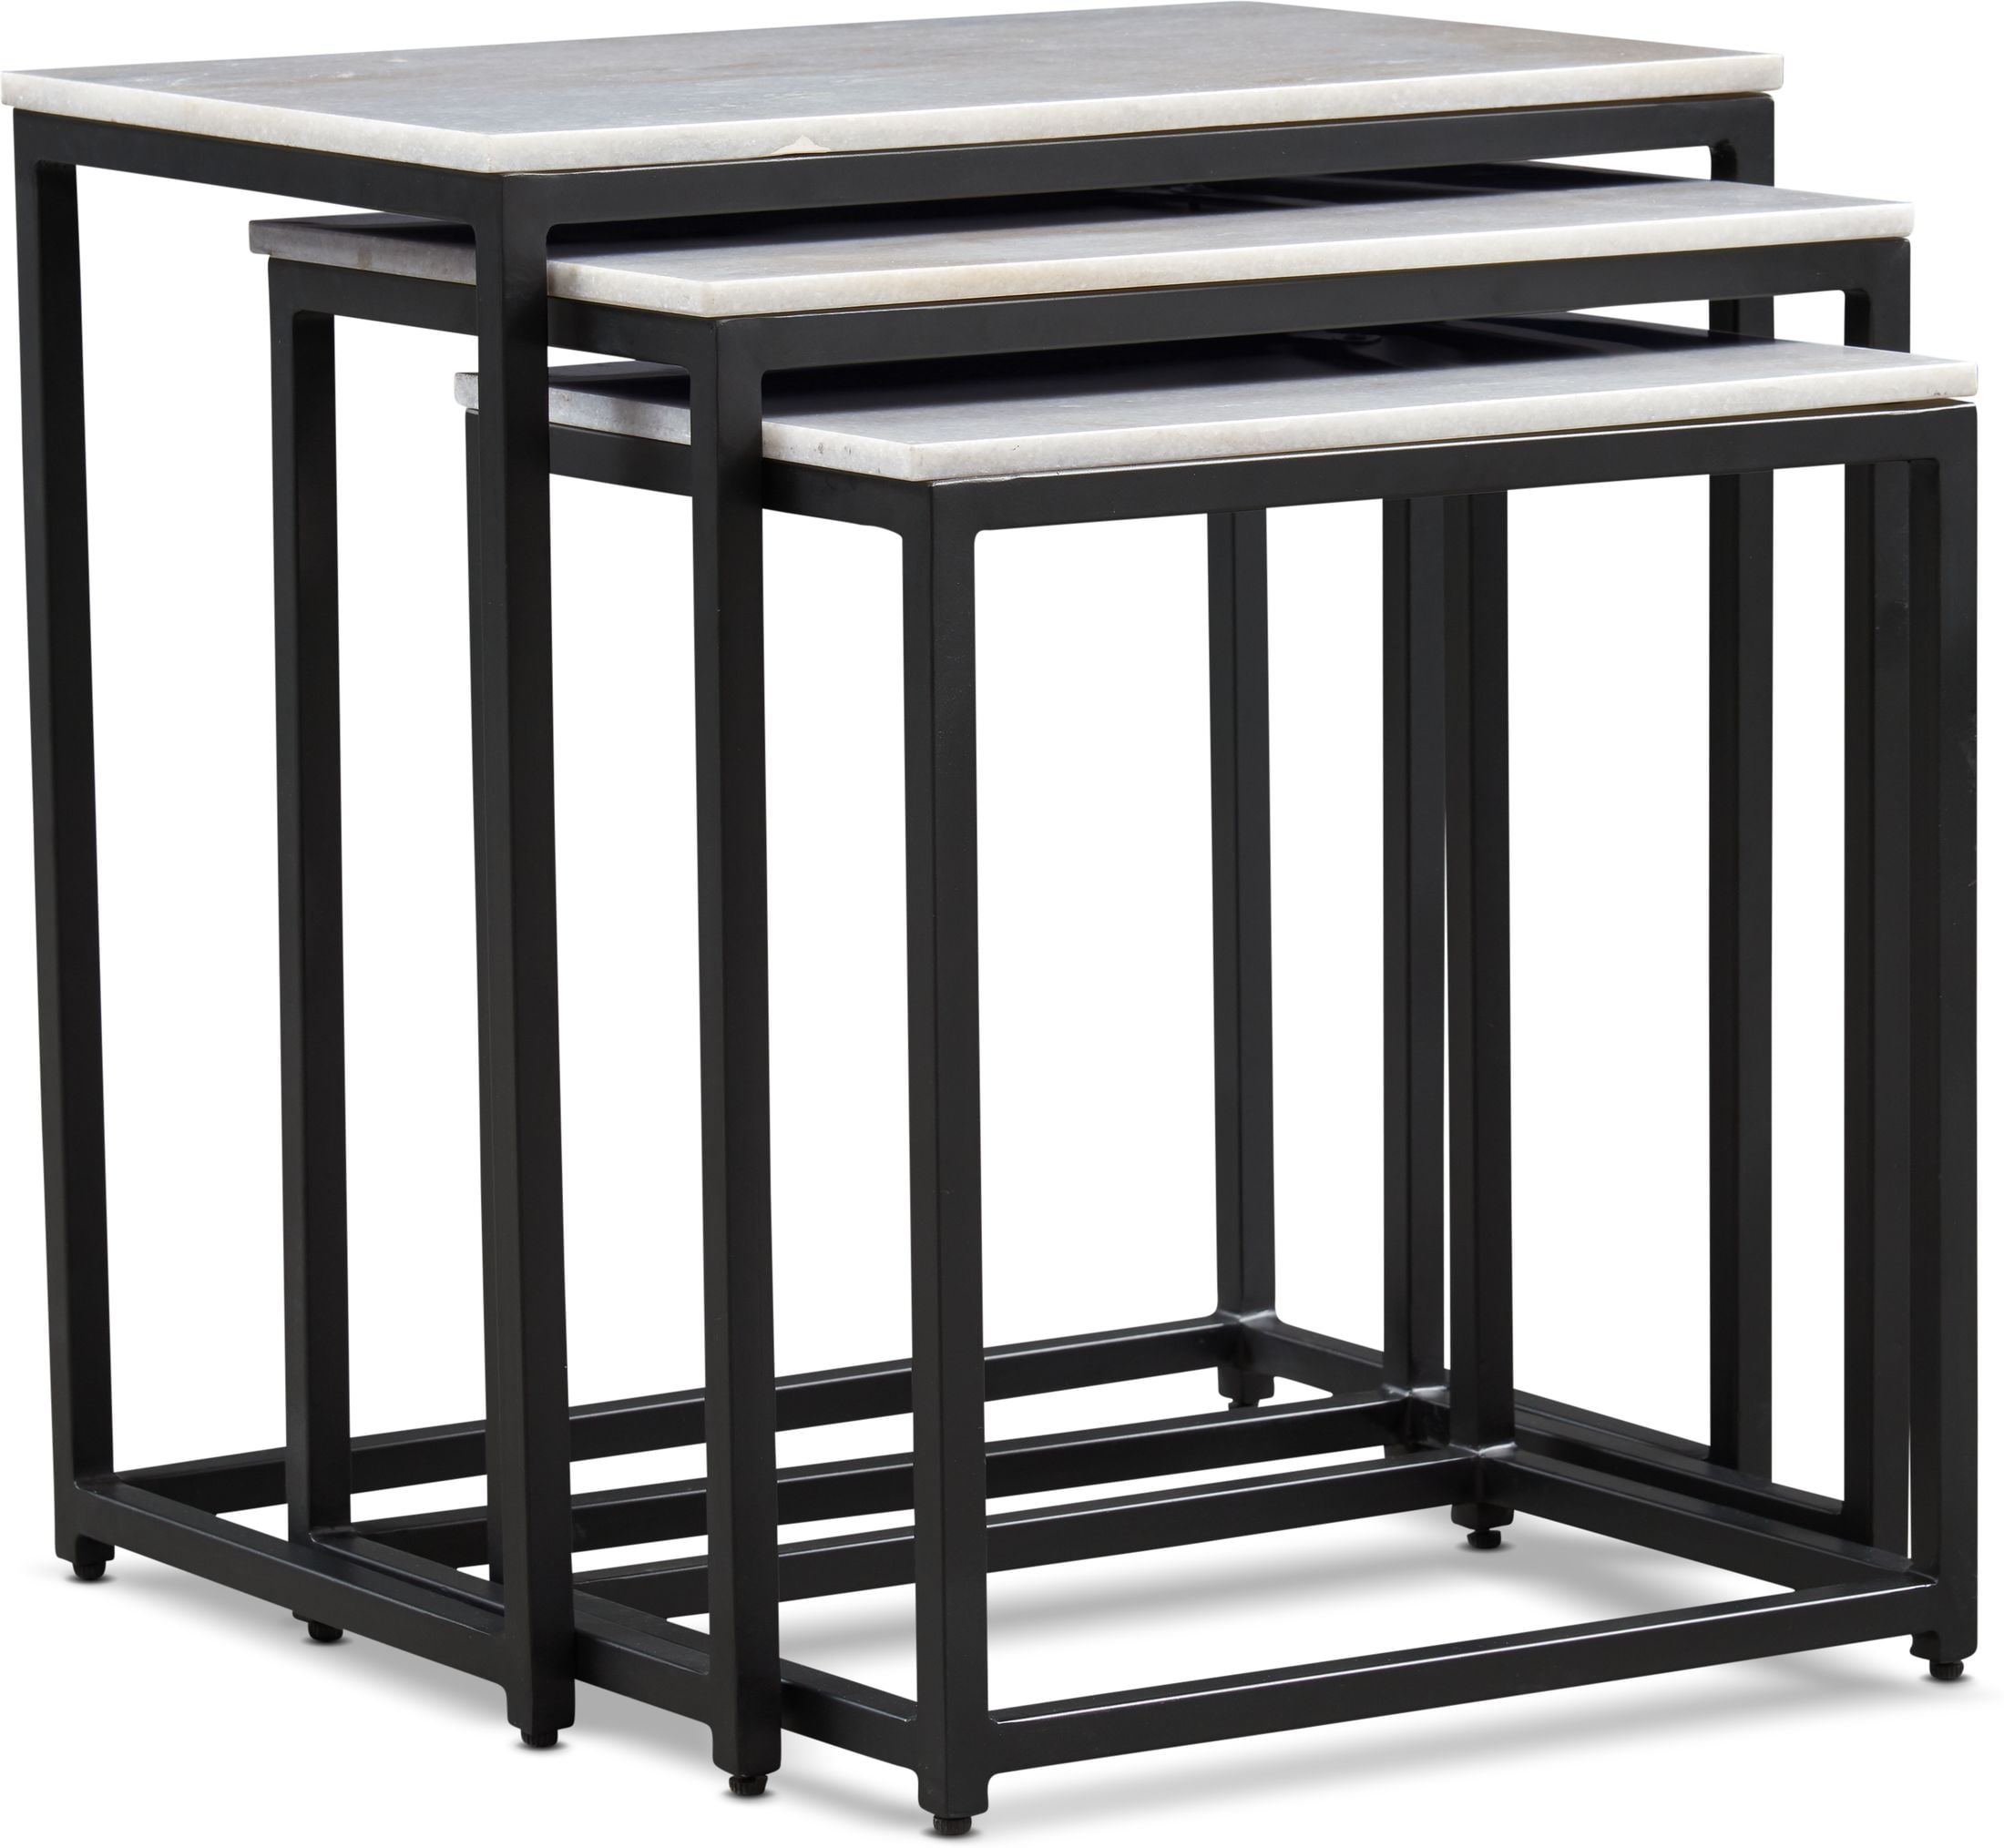 Accent and Occasional Furniture - Simplicity Marble Nesting Tables